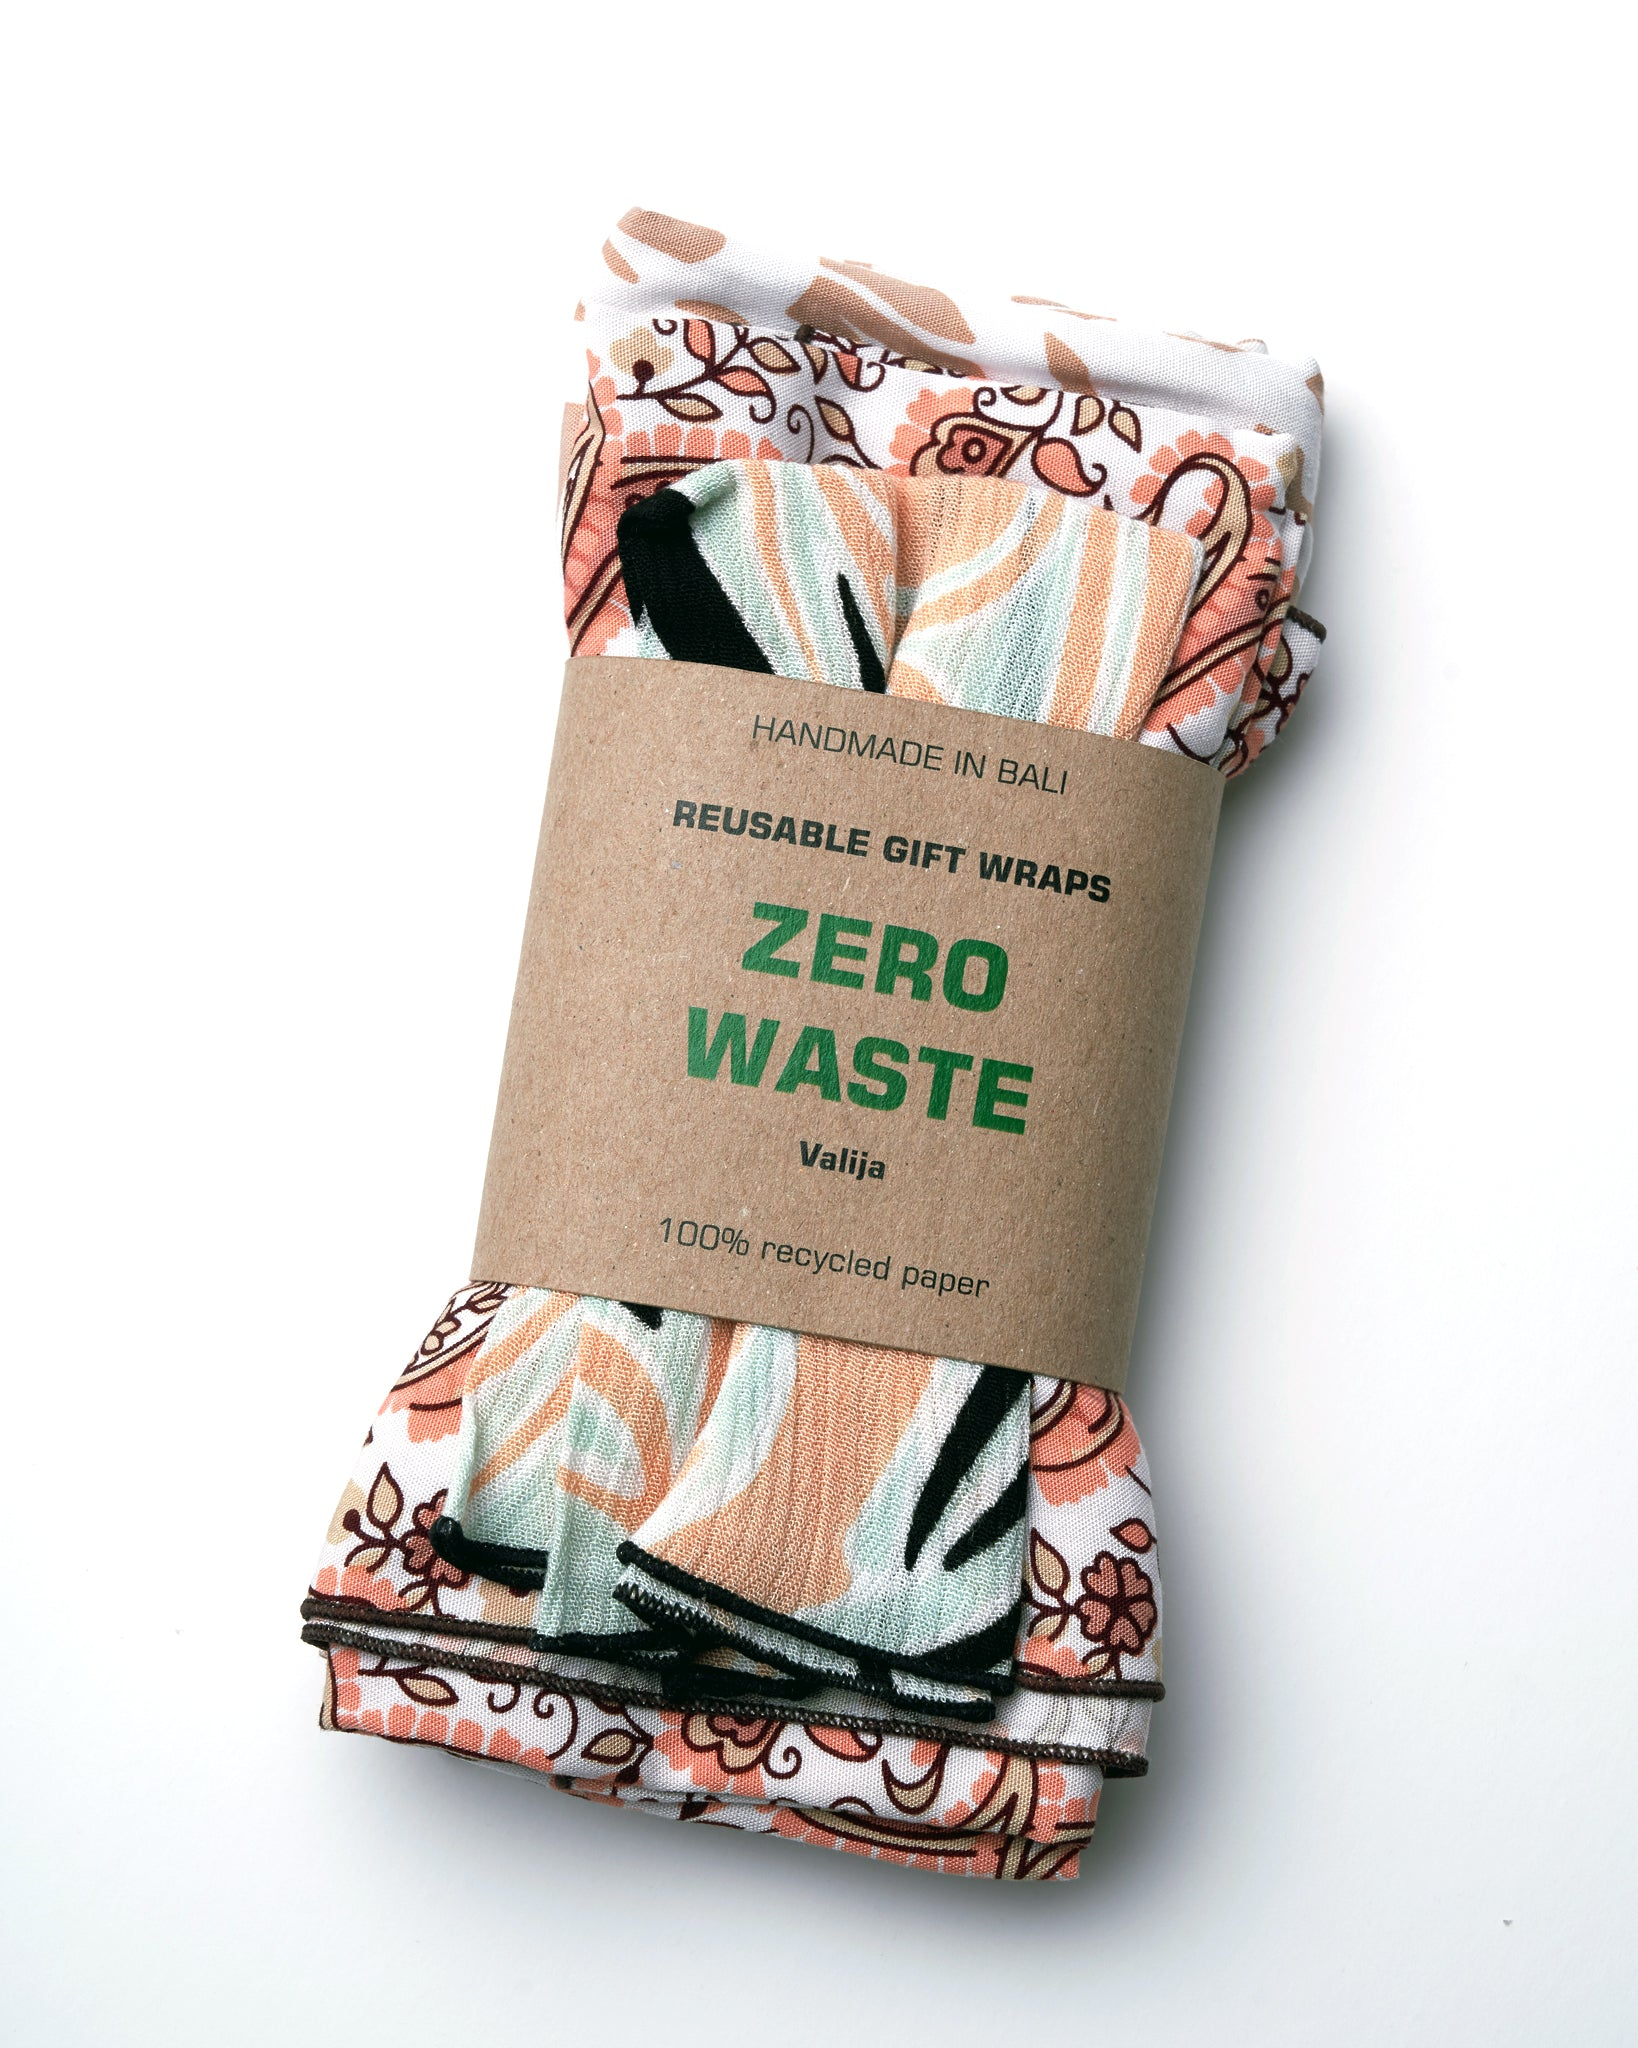 Zero Waste Reusable Gift Wraps